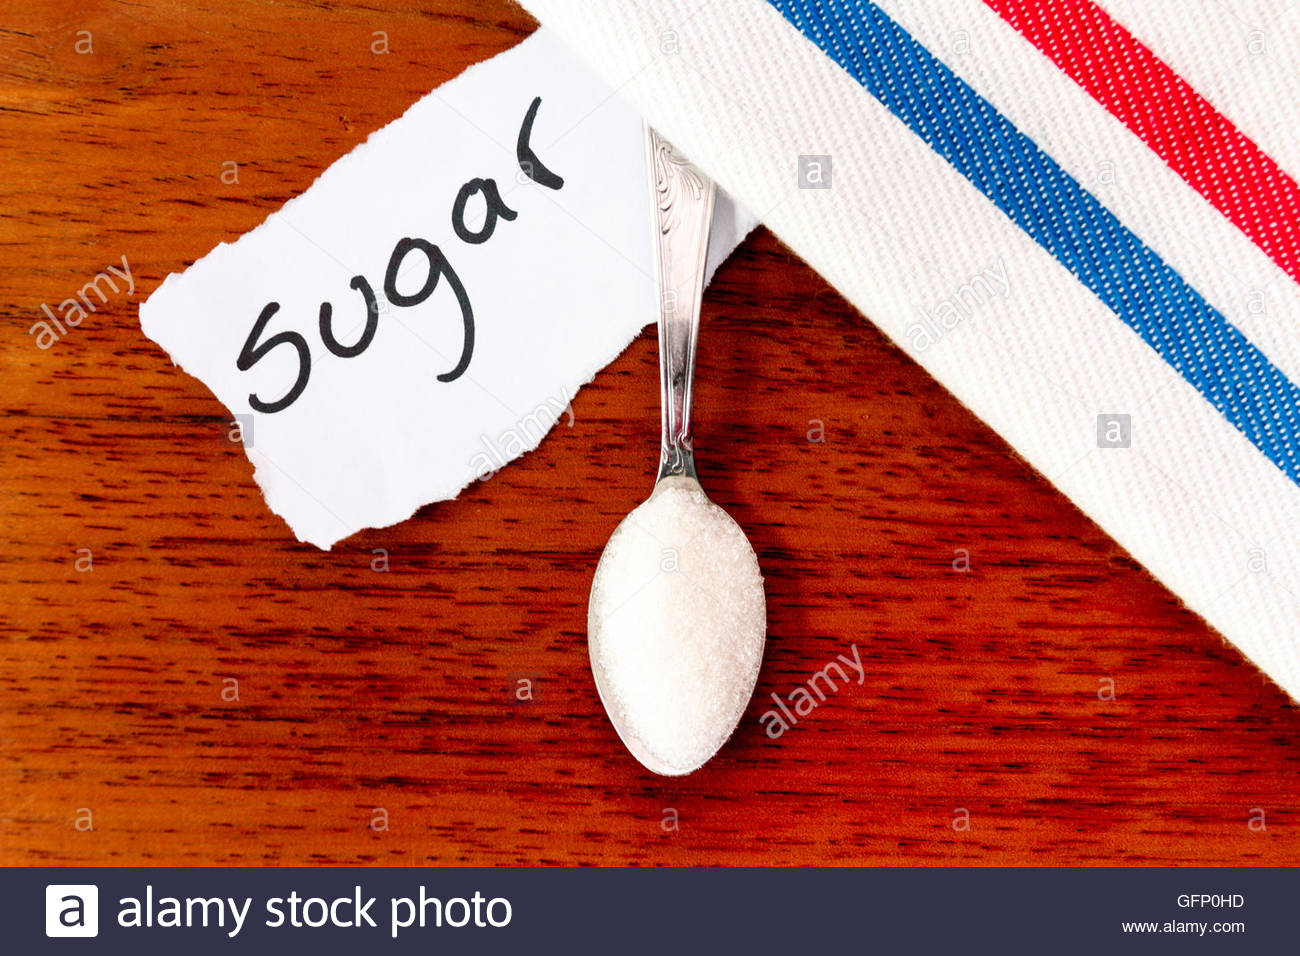 Spoon with sugar, white napkin and sign with the word 'Sugar' on wood - Stock Image